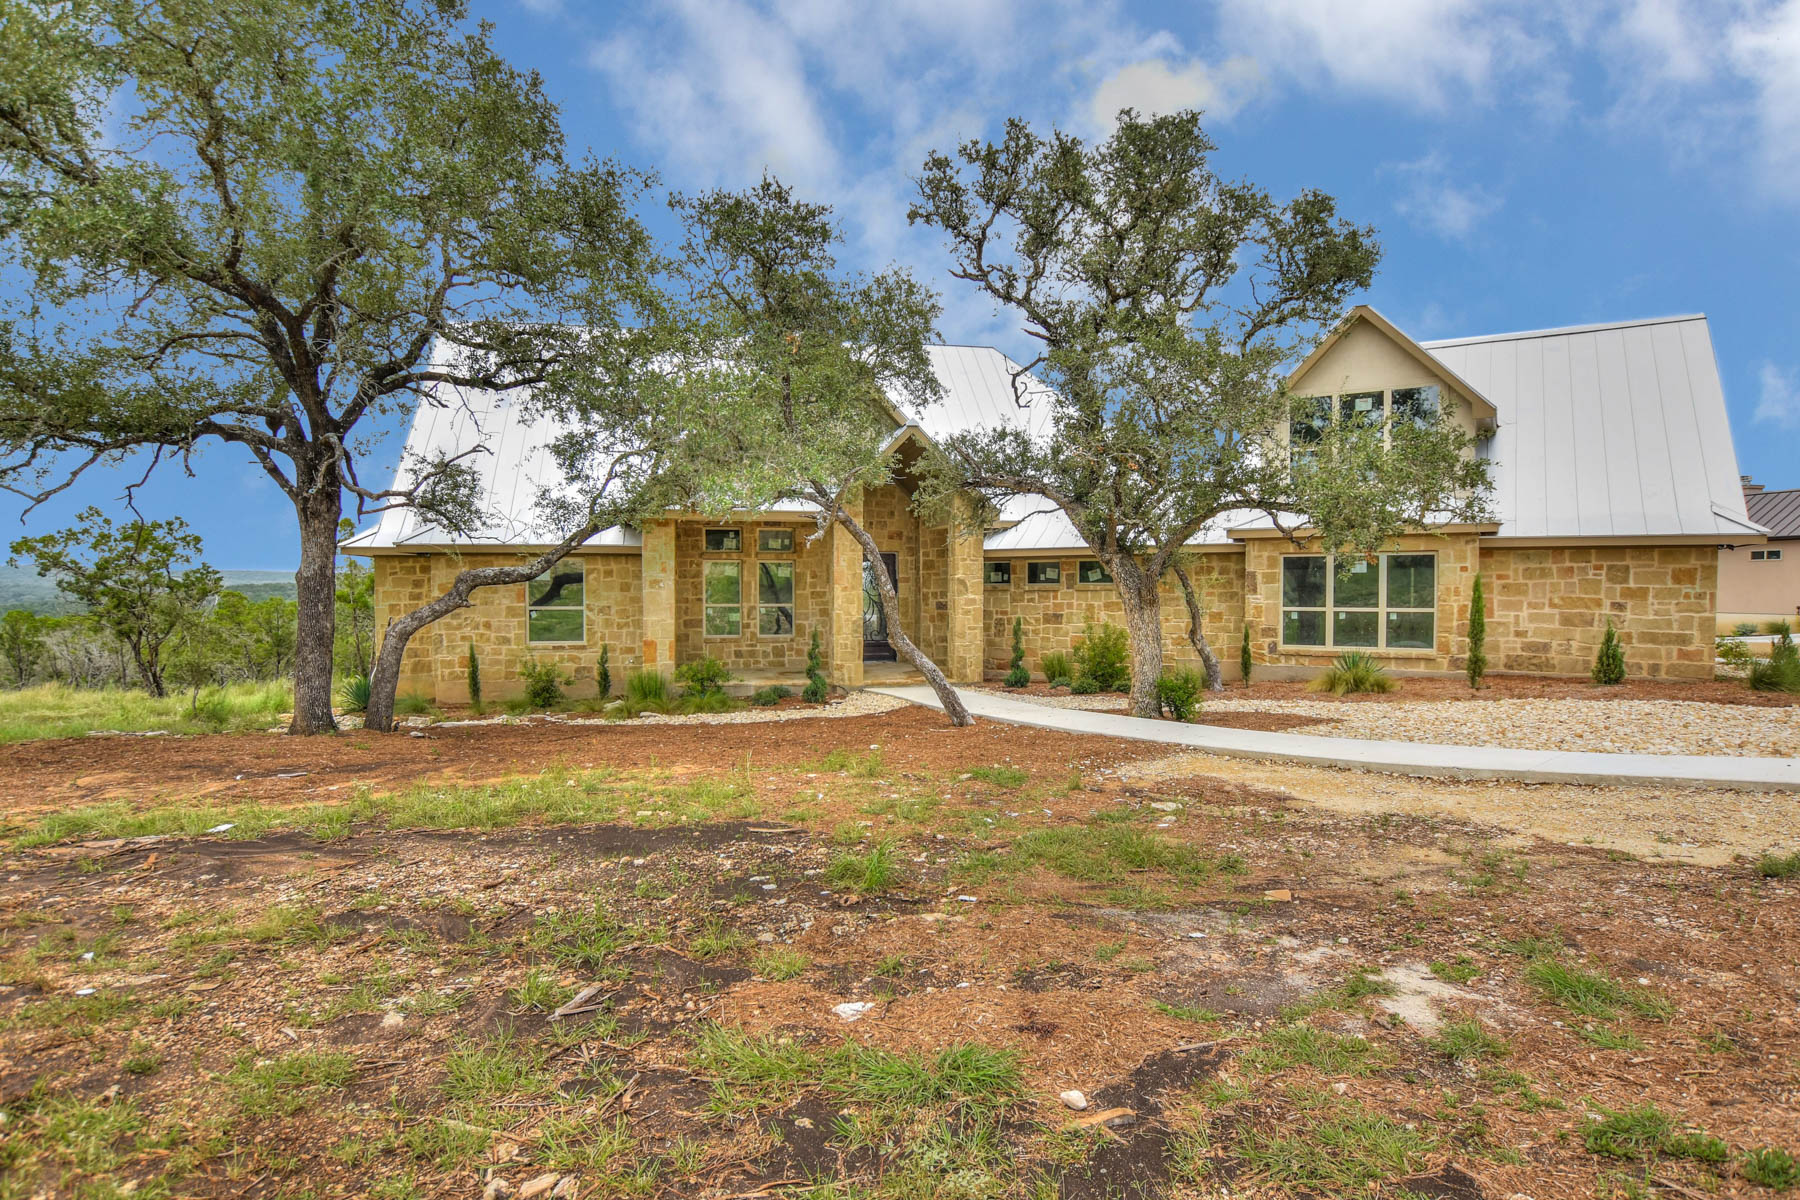 Single Family Home for Sale at Extraordinary Views from this Gorgeous Custom Home 522 Cantera Ridge New Braunfels, Texas 78132 United States